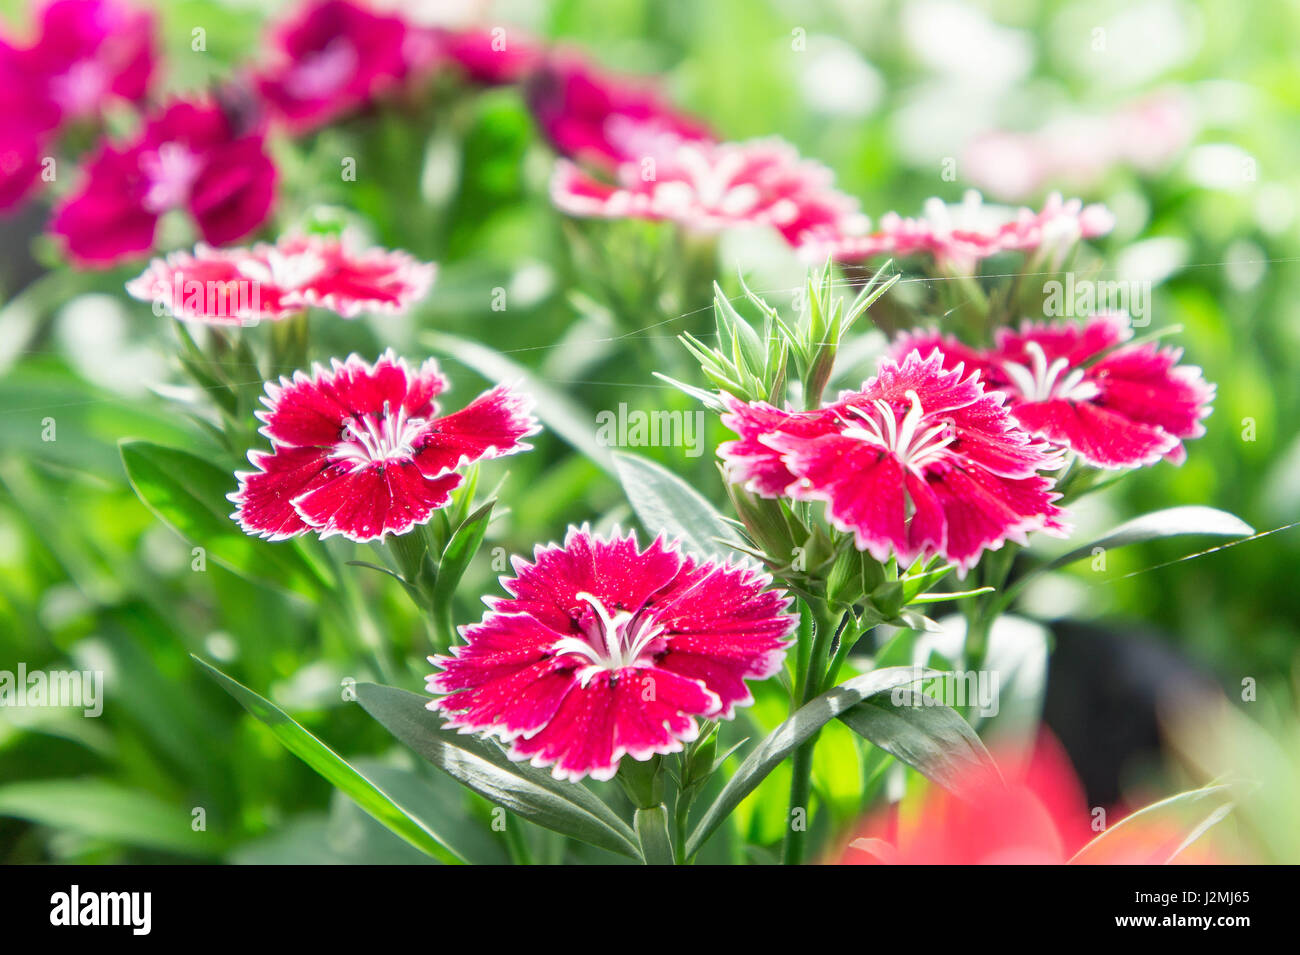 Dianthus flower in the garden beautiful flowers - Stock Image